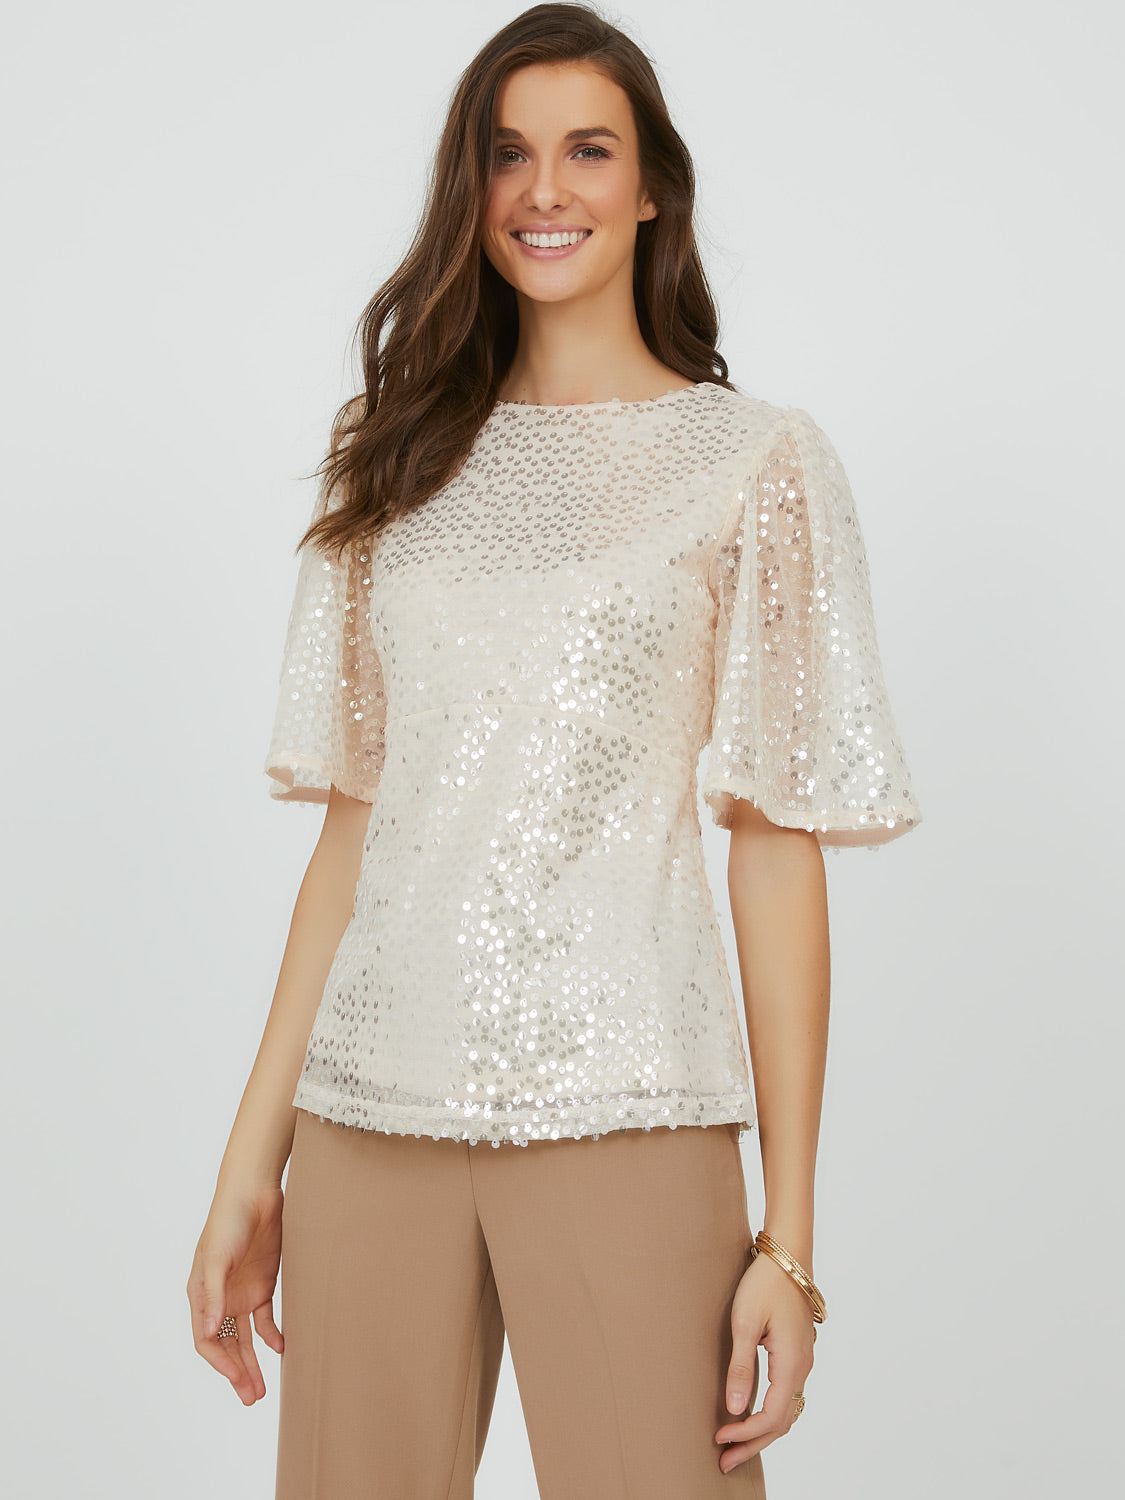 Sequin Empire Waist Top